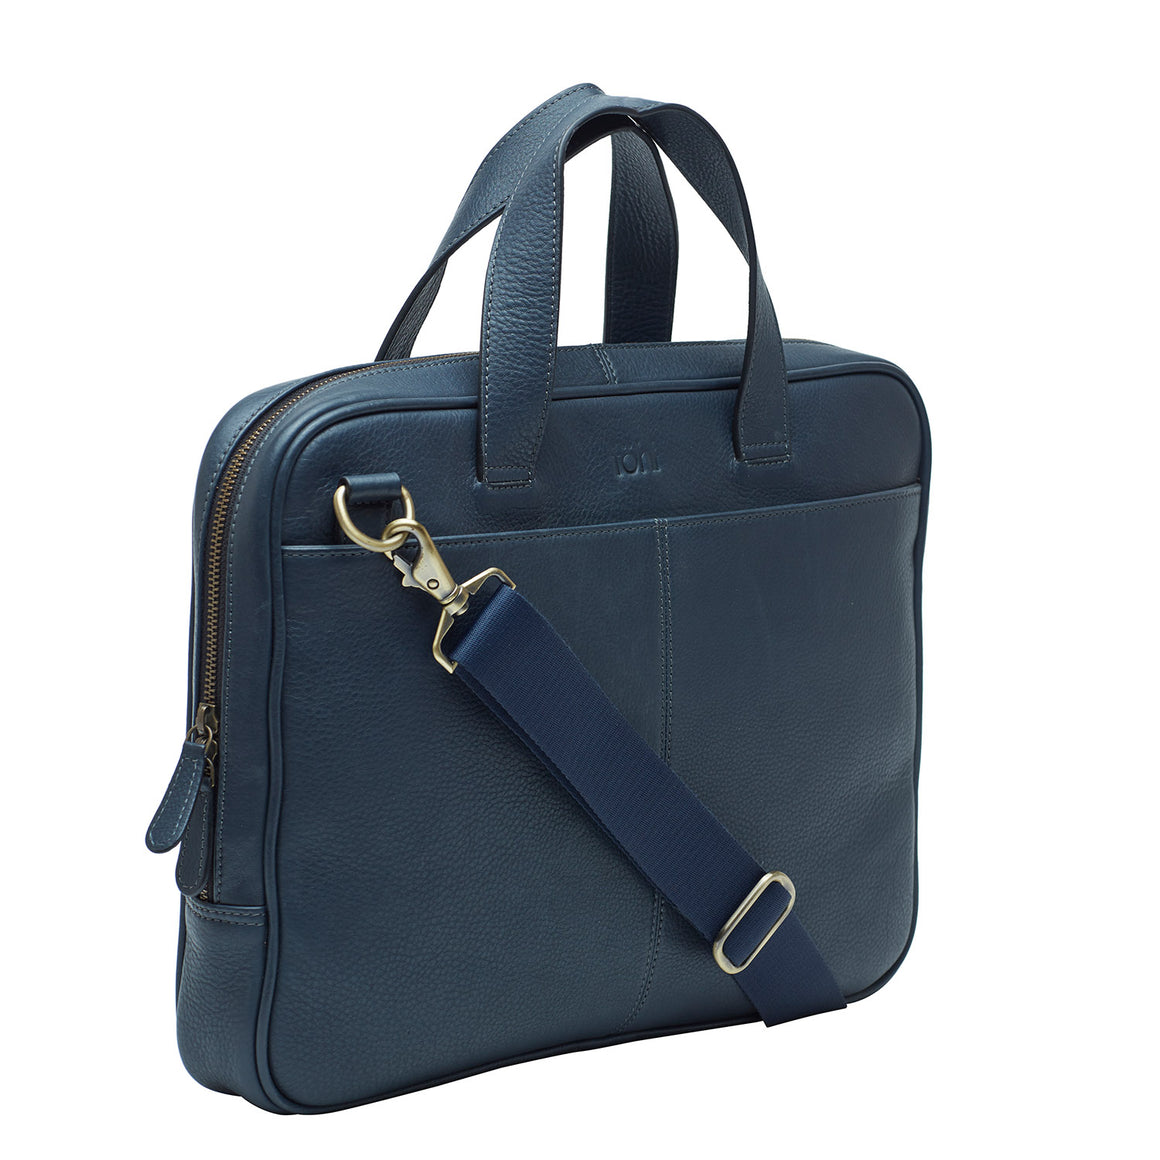 LB 0005 - TOHL BONAZZI MEN'S LAPTOP BAG - NAVY